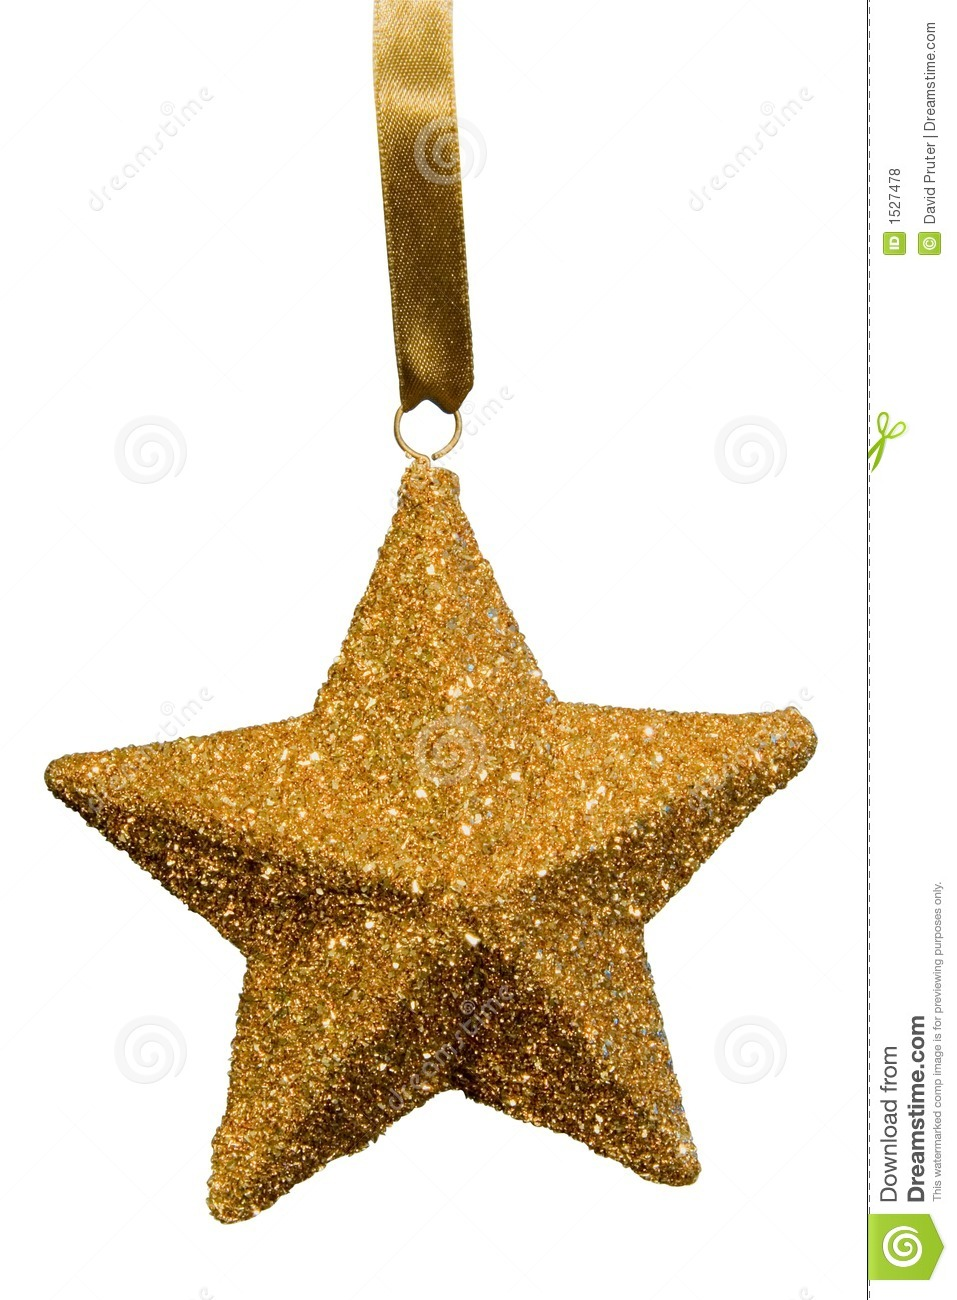 Gold Star Christmas Ornament Royalty Free Stock Photos - Image ...